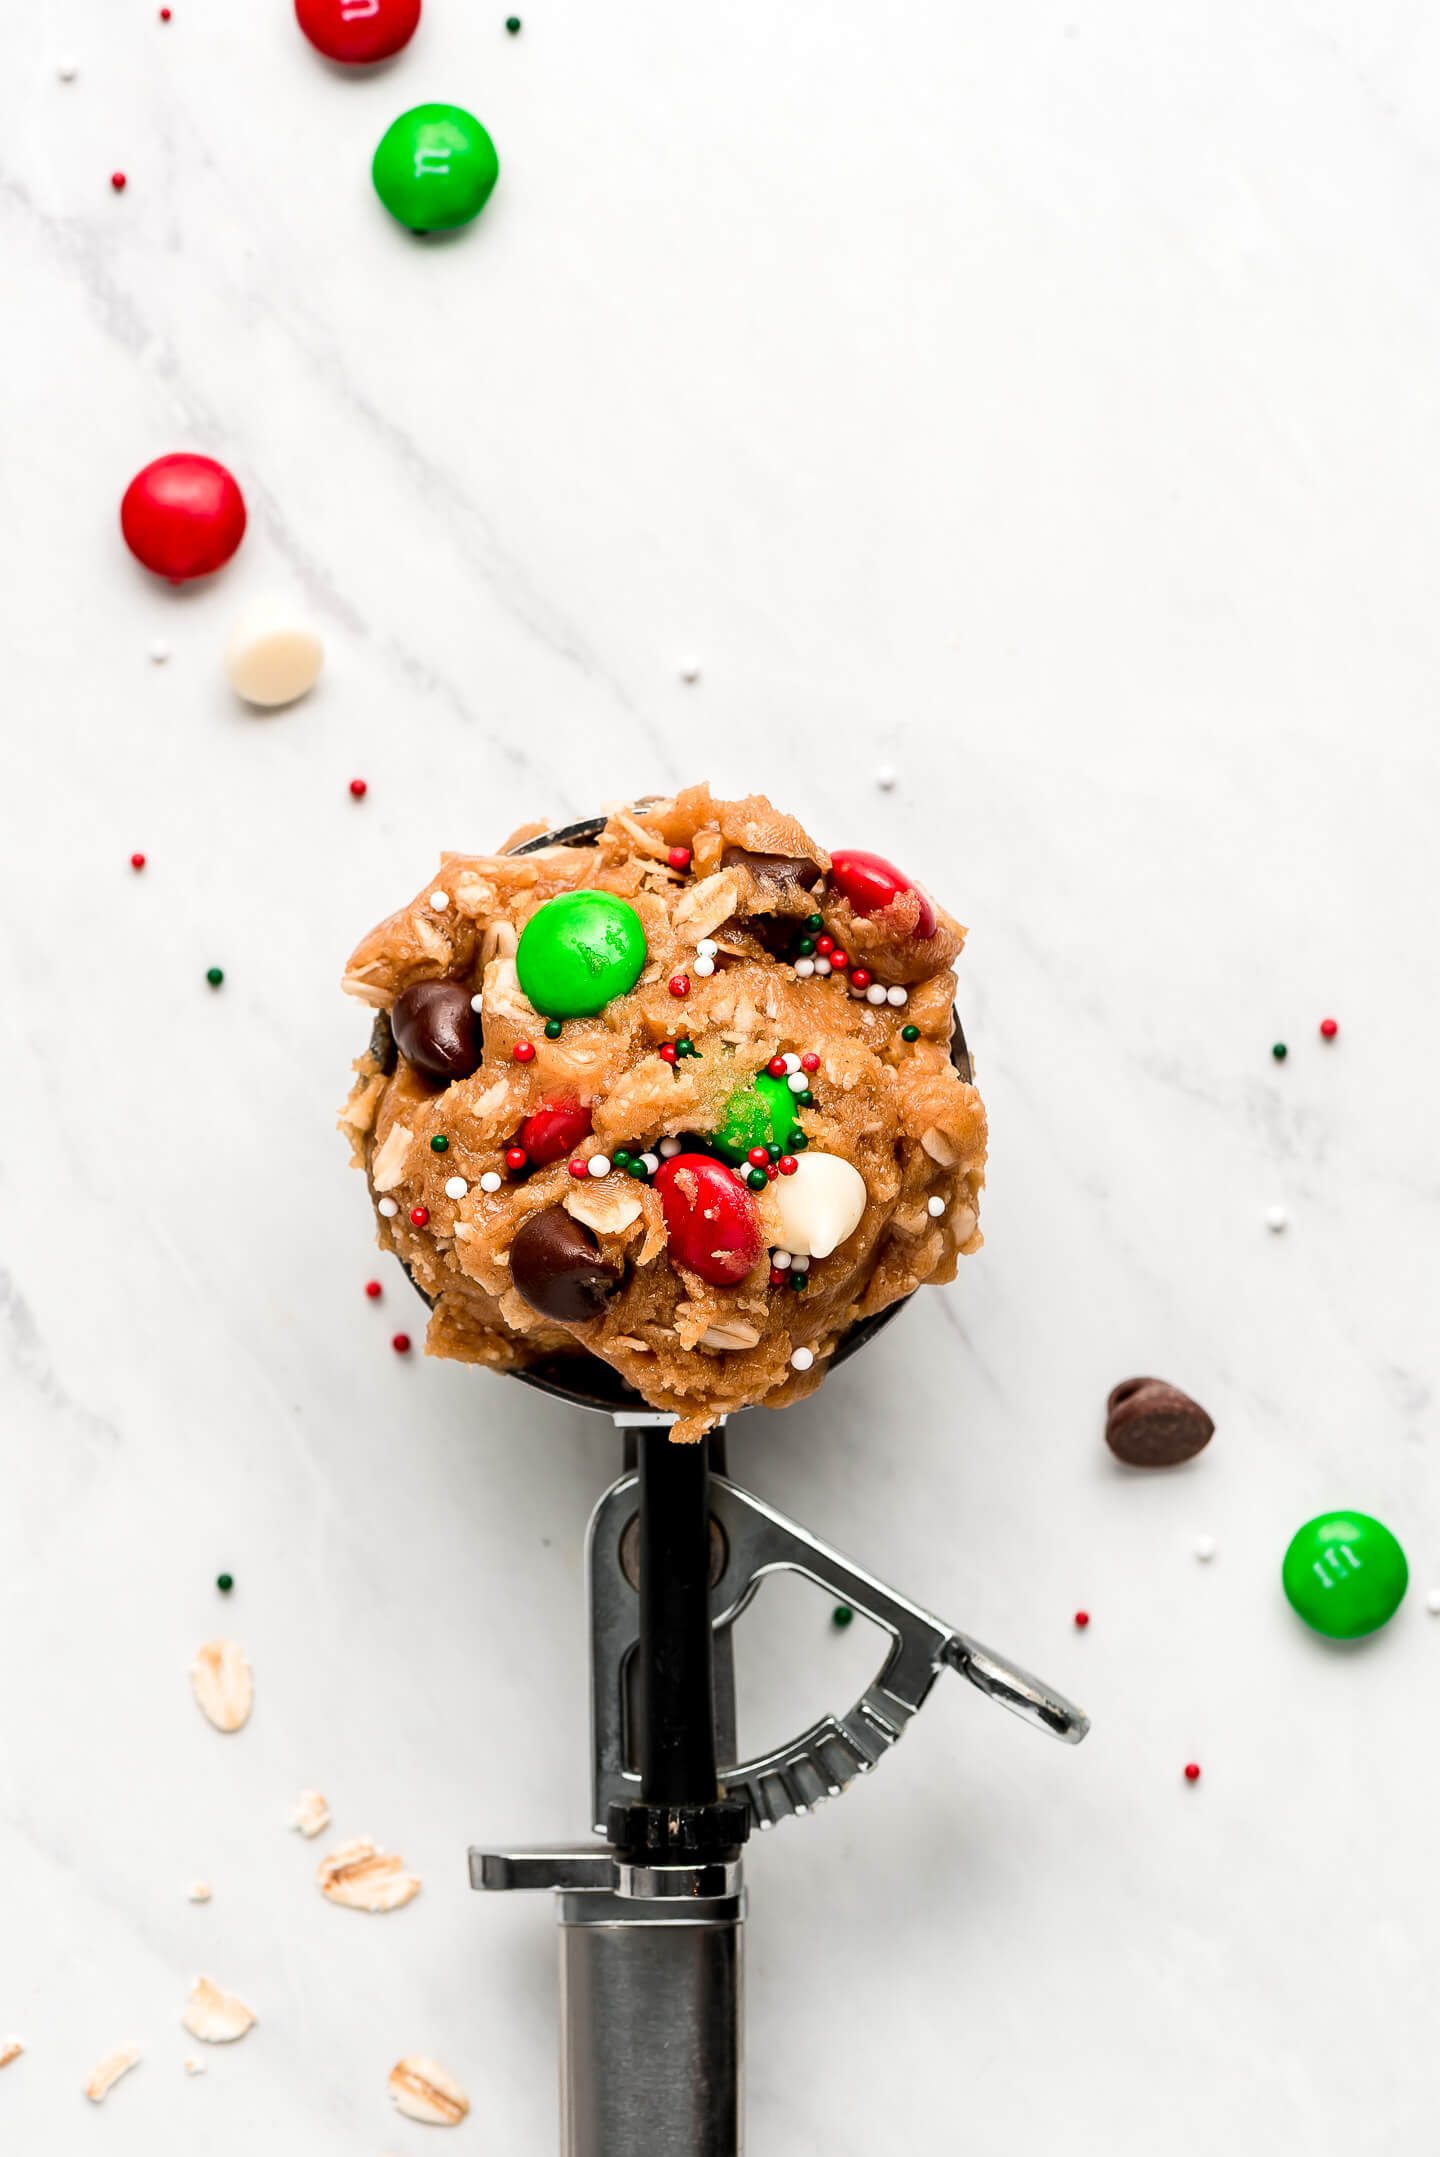 A trigger scoop full of cookie dough with red and green M&M's.